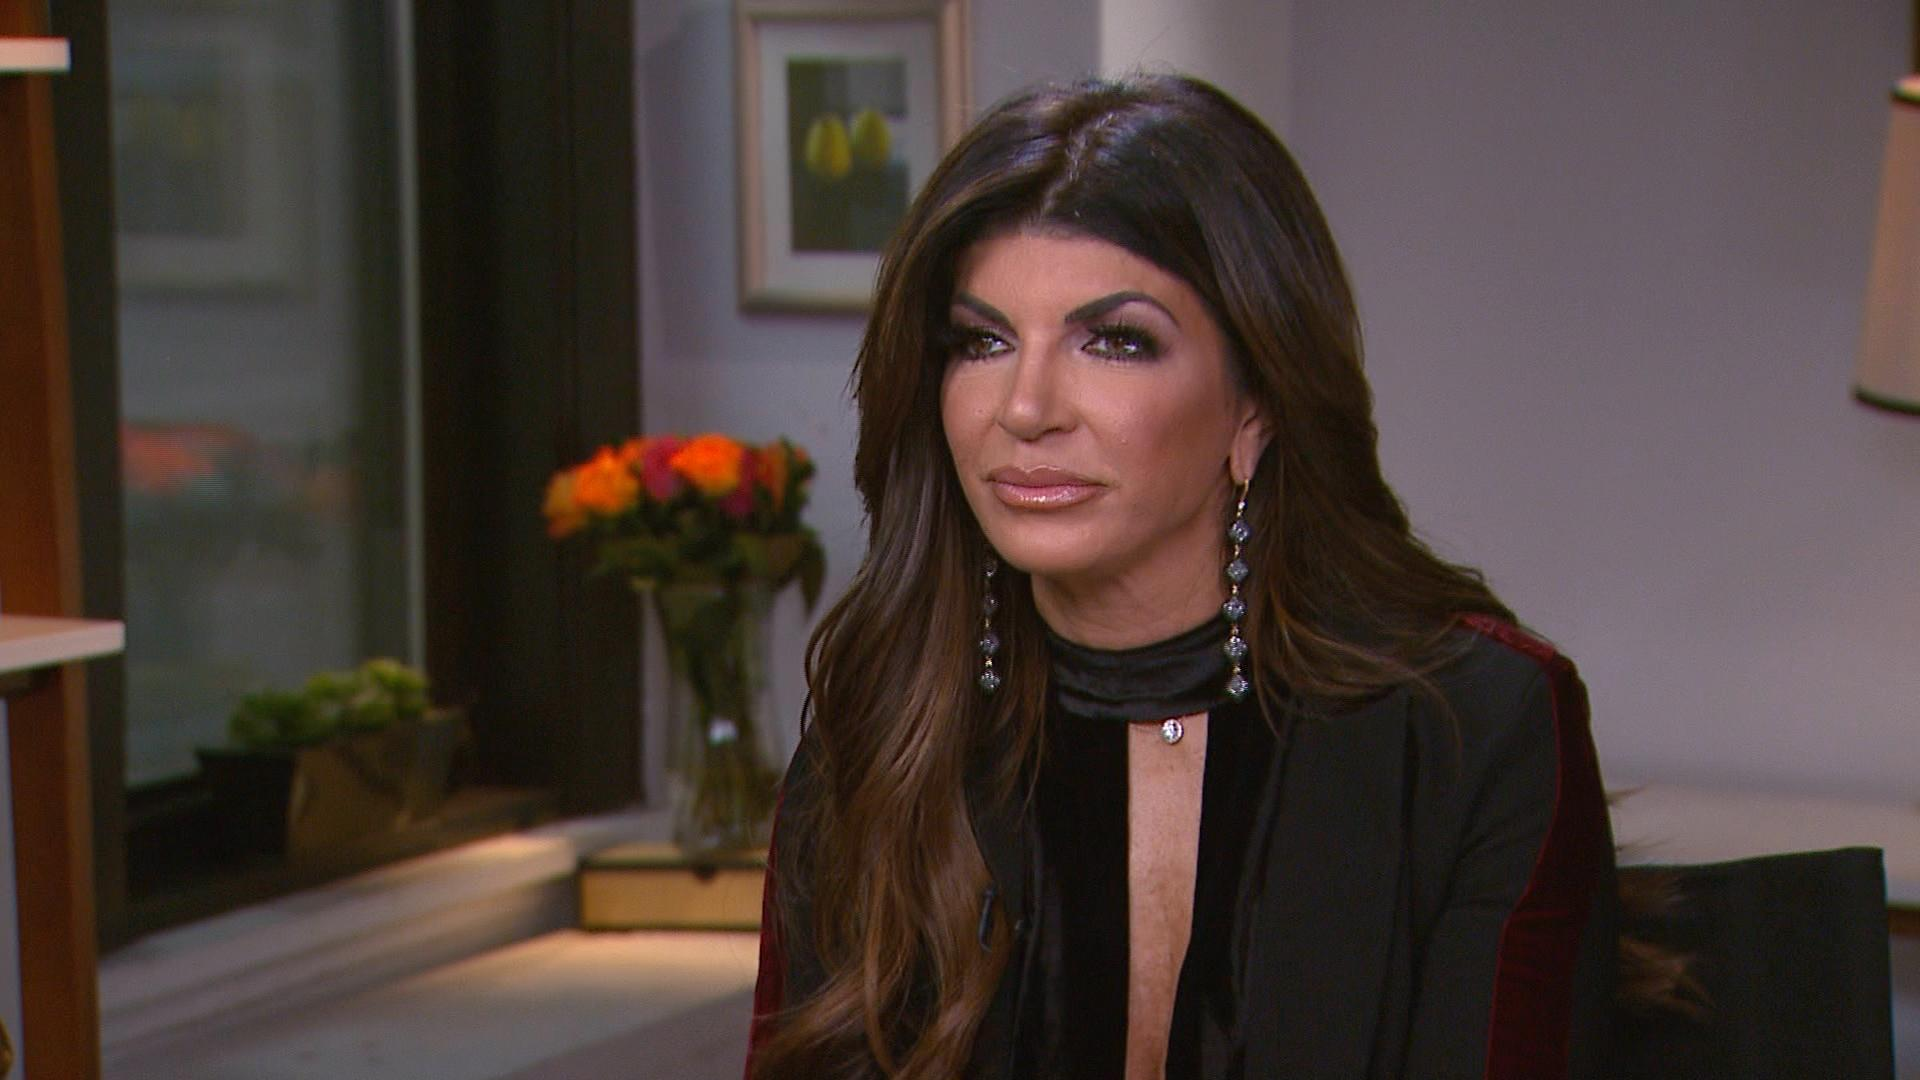 Teresa Giudice Opens Up About Her Future With Husband Joe and the Cheating Rumors (Exclusive)